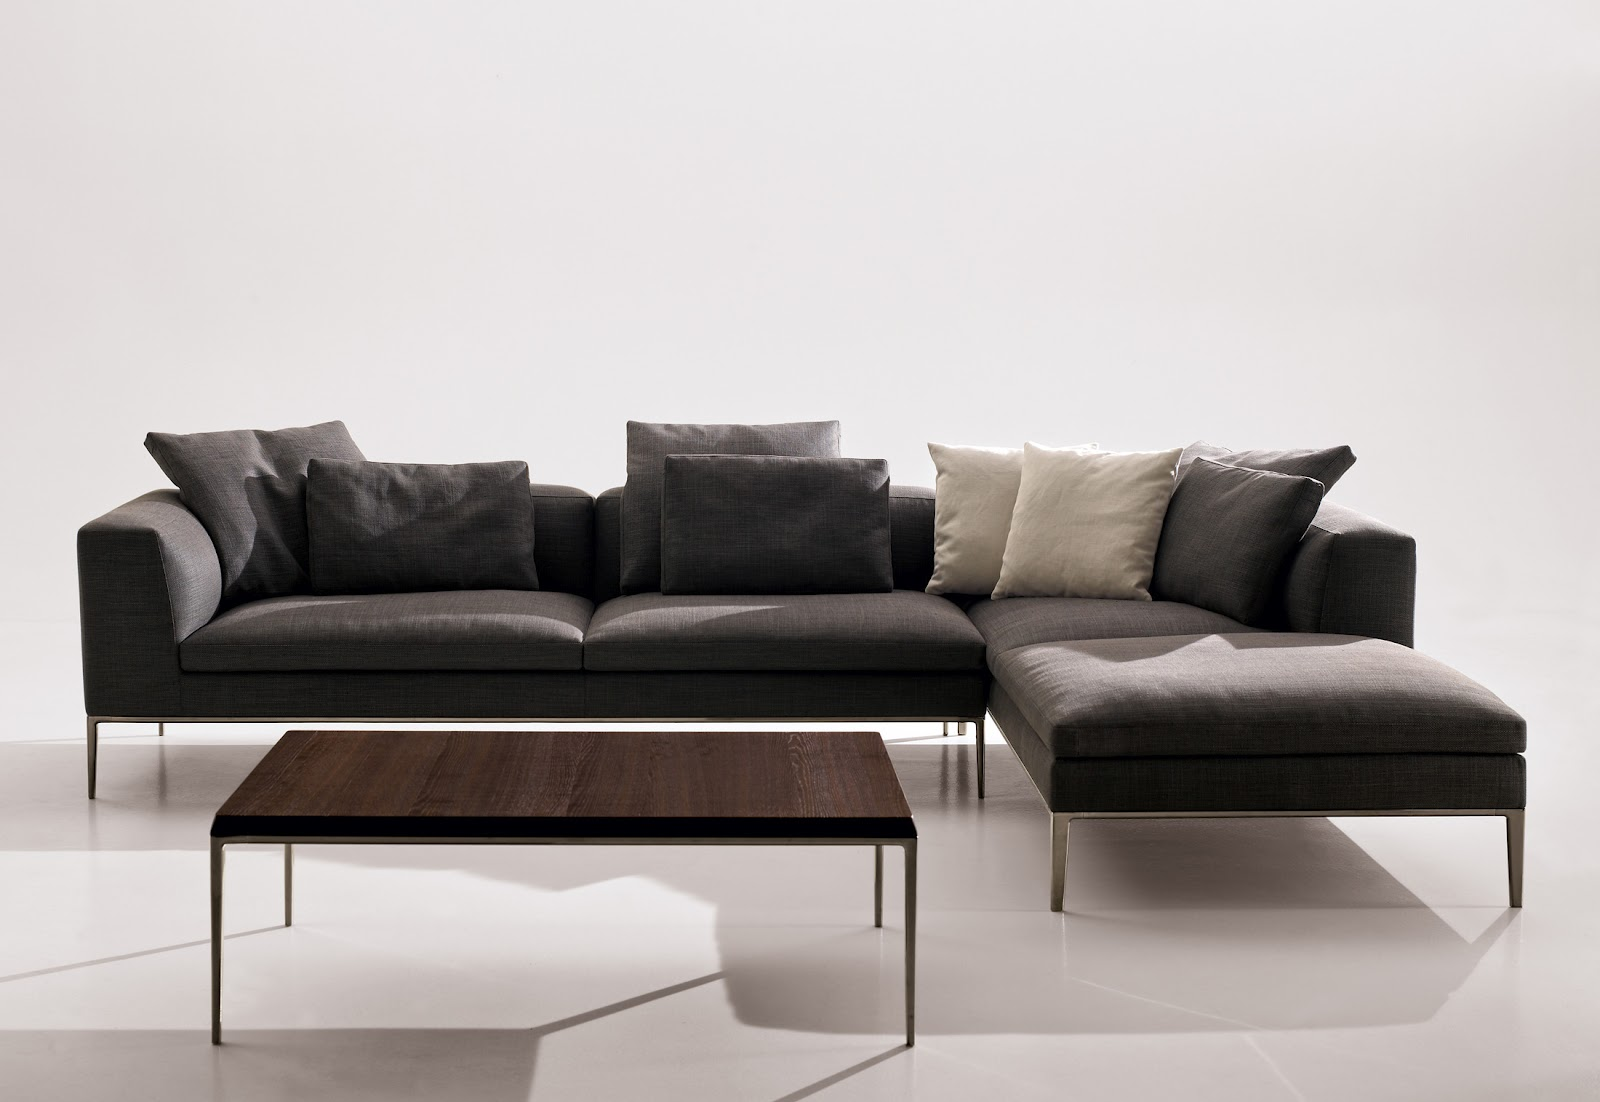 Designer Sofa Furniture Circle Sleeper Michel By B Andb Italia Fitted